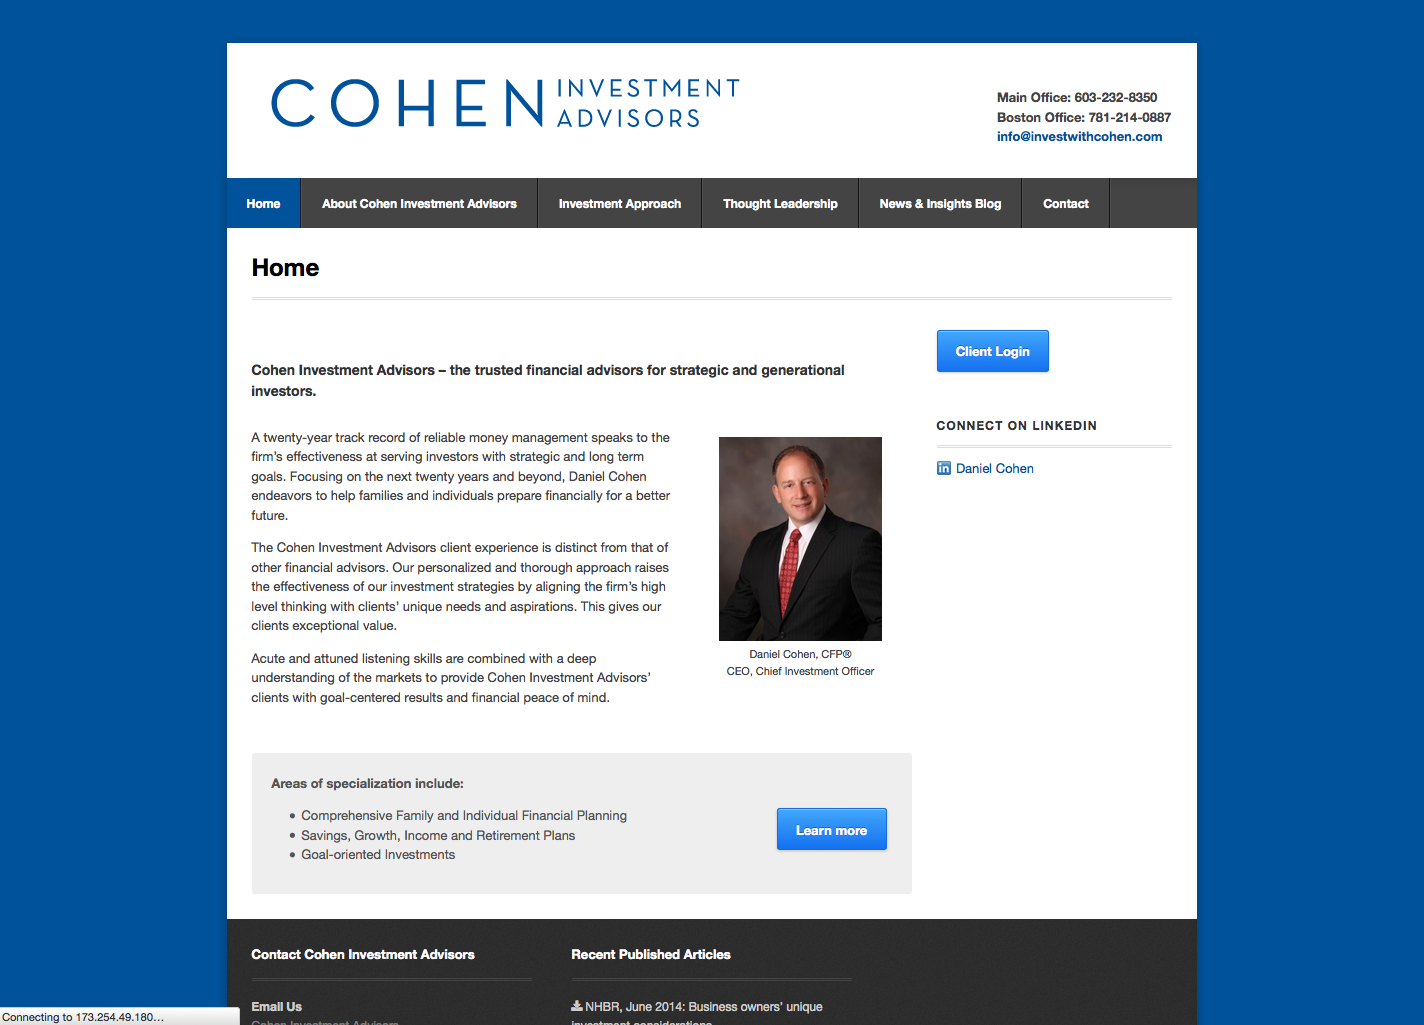 Cohen Investment Advisors